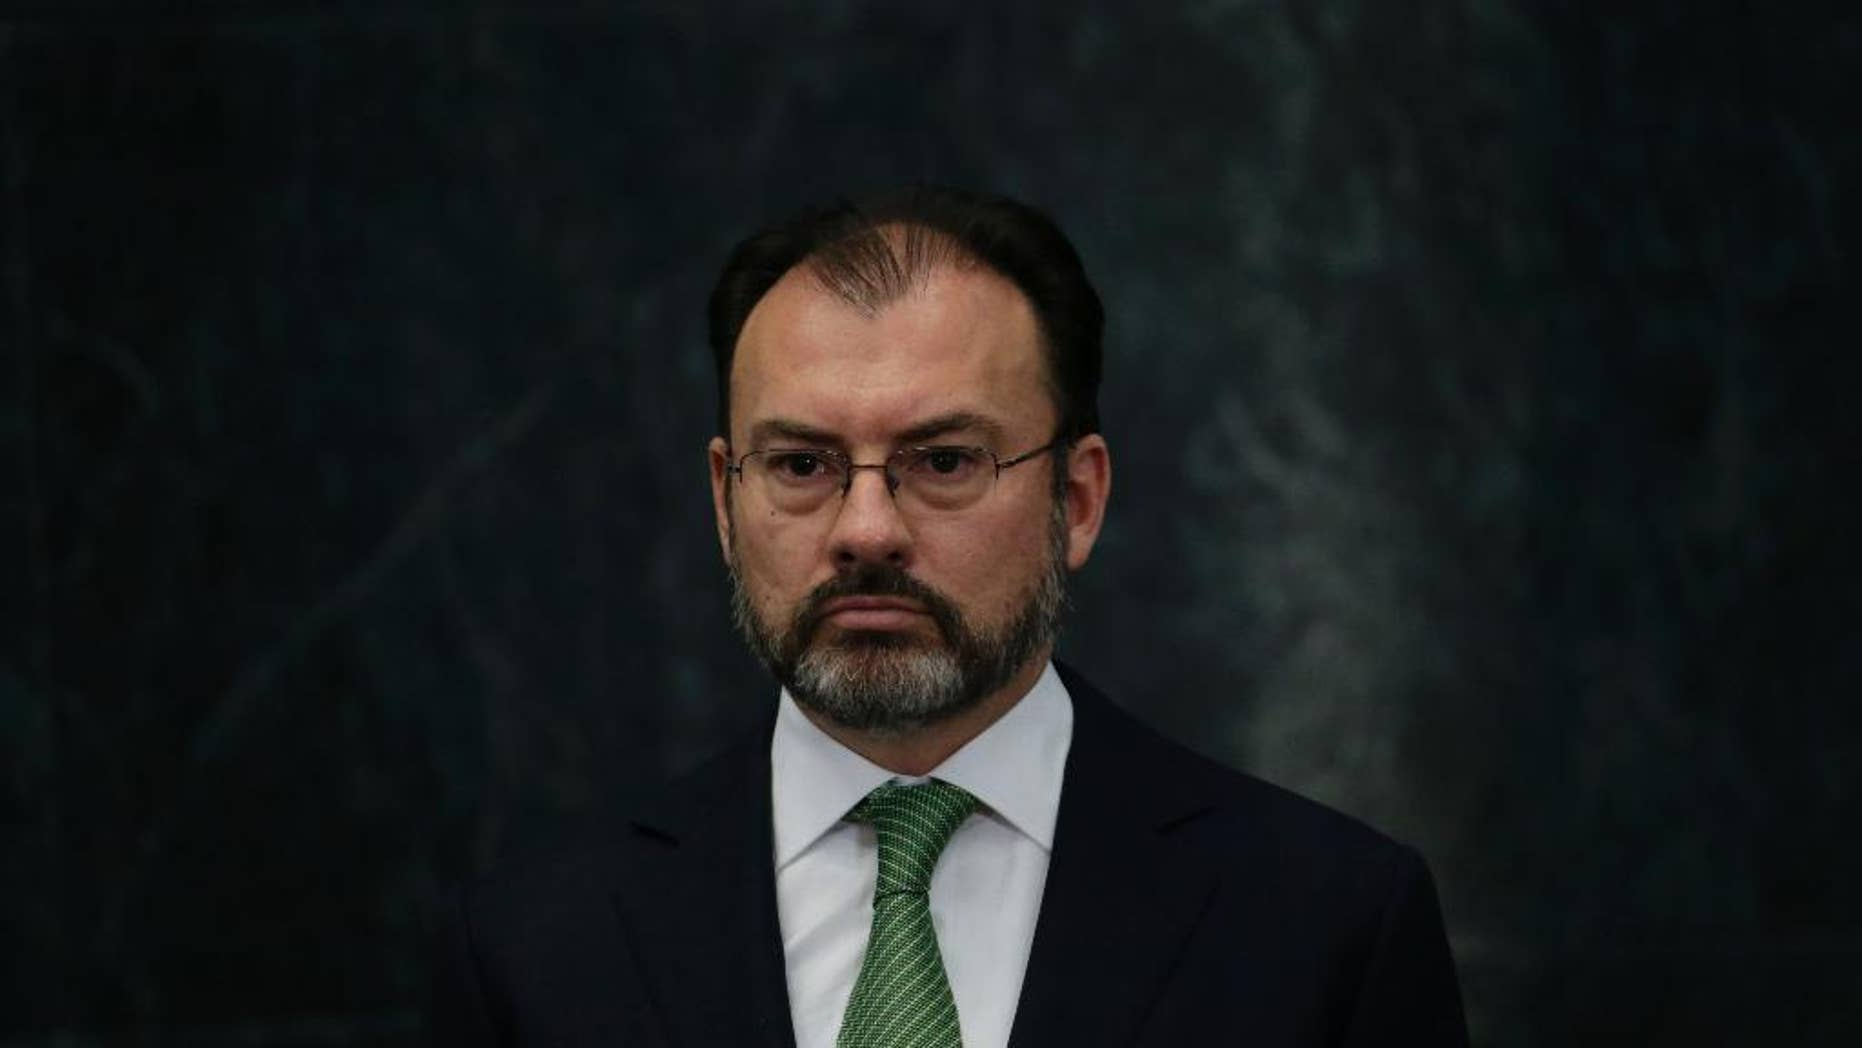 Mexico's new Foreign Relations Secretary Luis Videgaray stands during a press conference at the Los Pinos presidential residence in Mexico City, Wednesday, Jan. 4, 2017. Mexico's president has brought back Videgaray, a close adviser who resigned after arranging a meeting between Pena Nieto and then-presidential candidate Donald J. Trump. (AP Photo/Marco Ugarte)